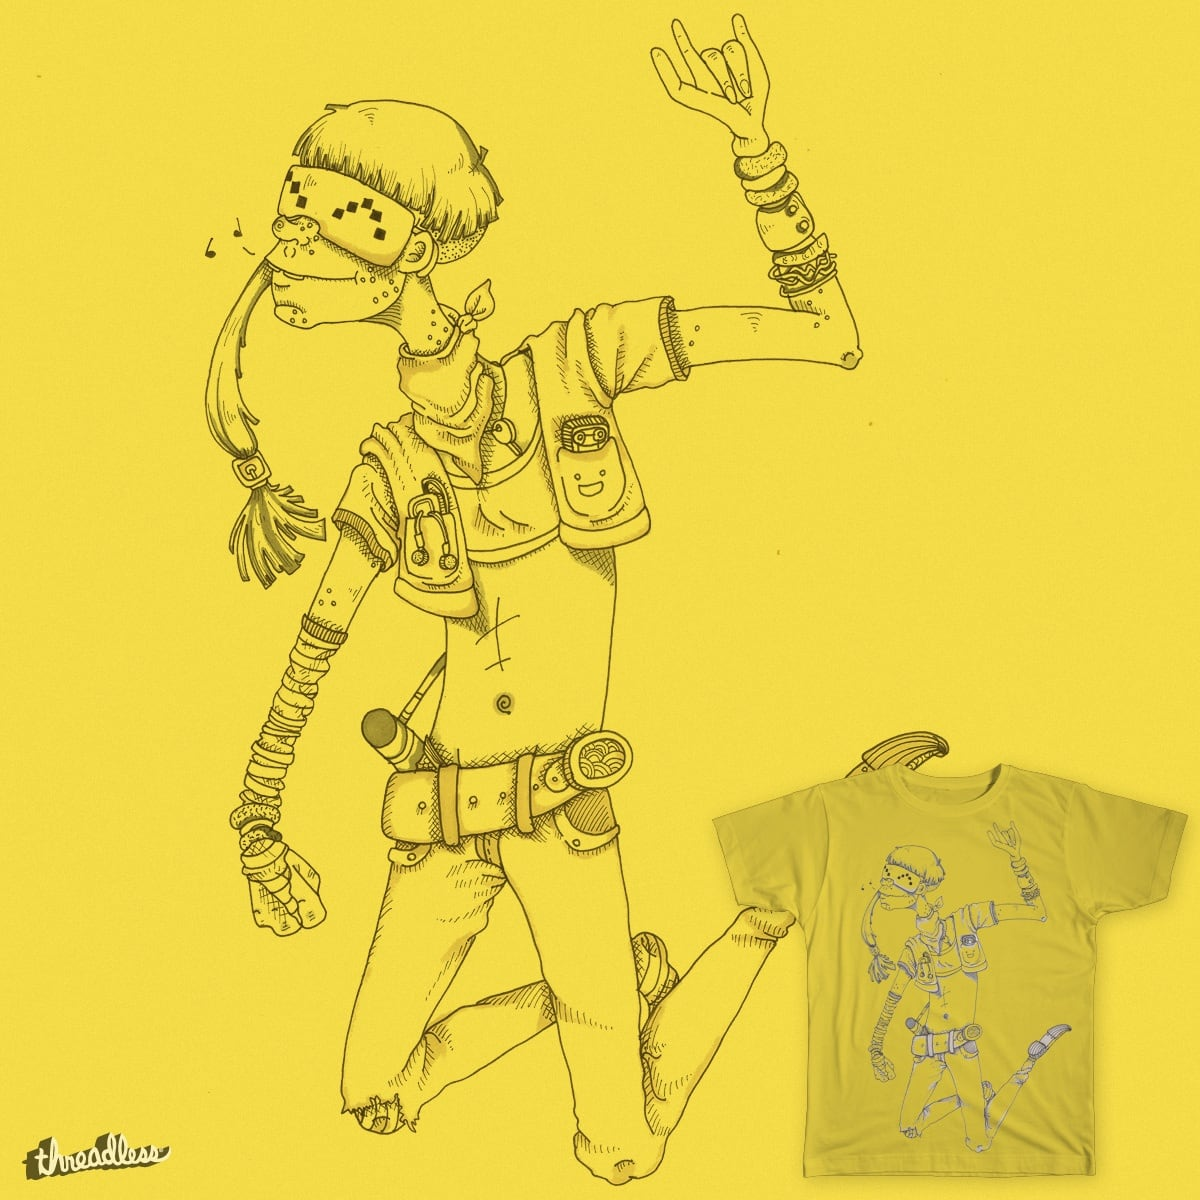 Virtual Venu by quirky woof on Threadless